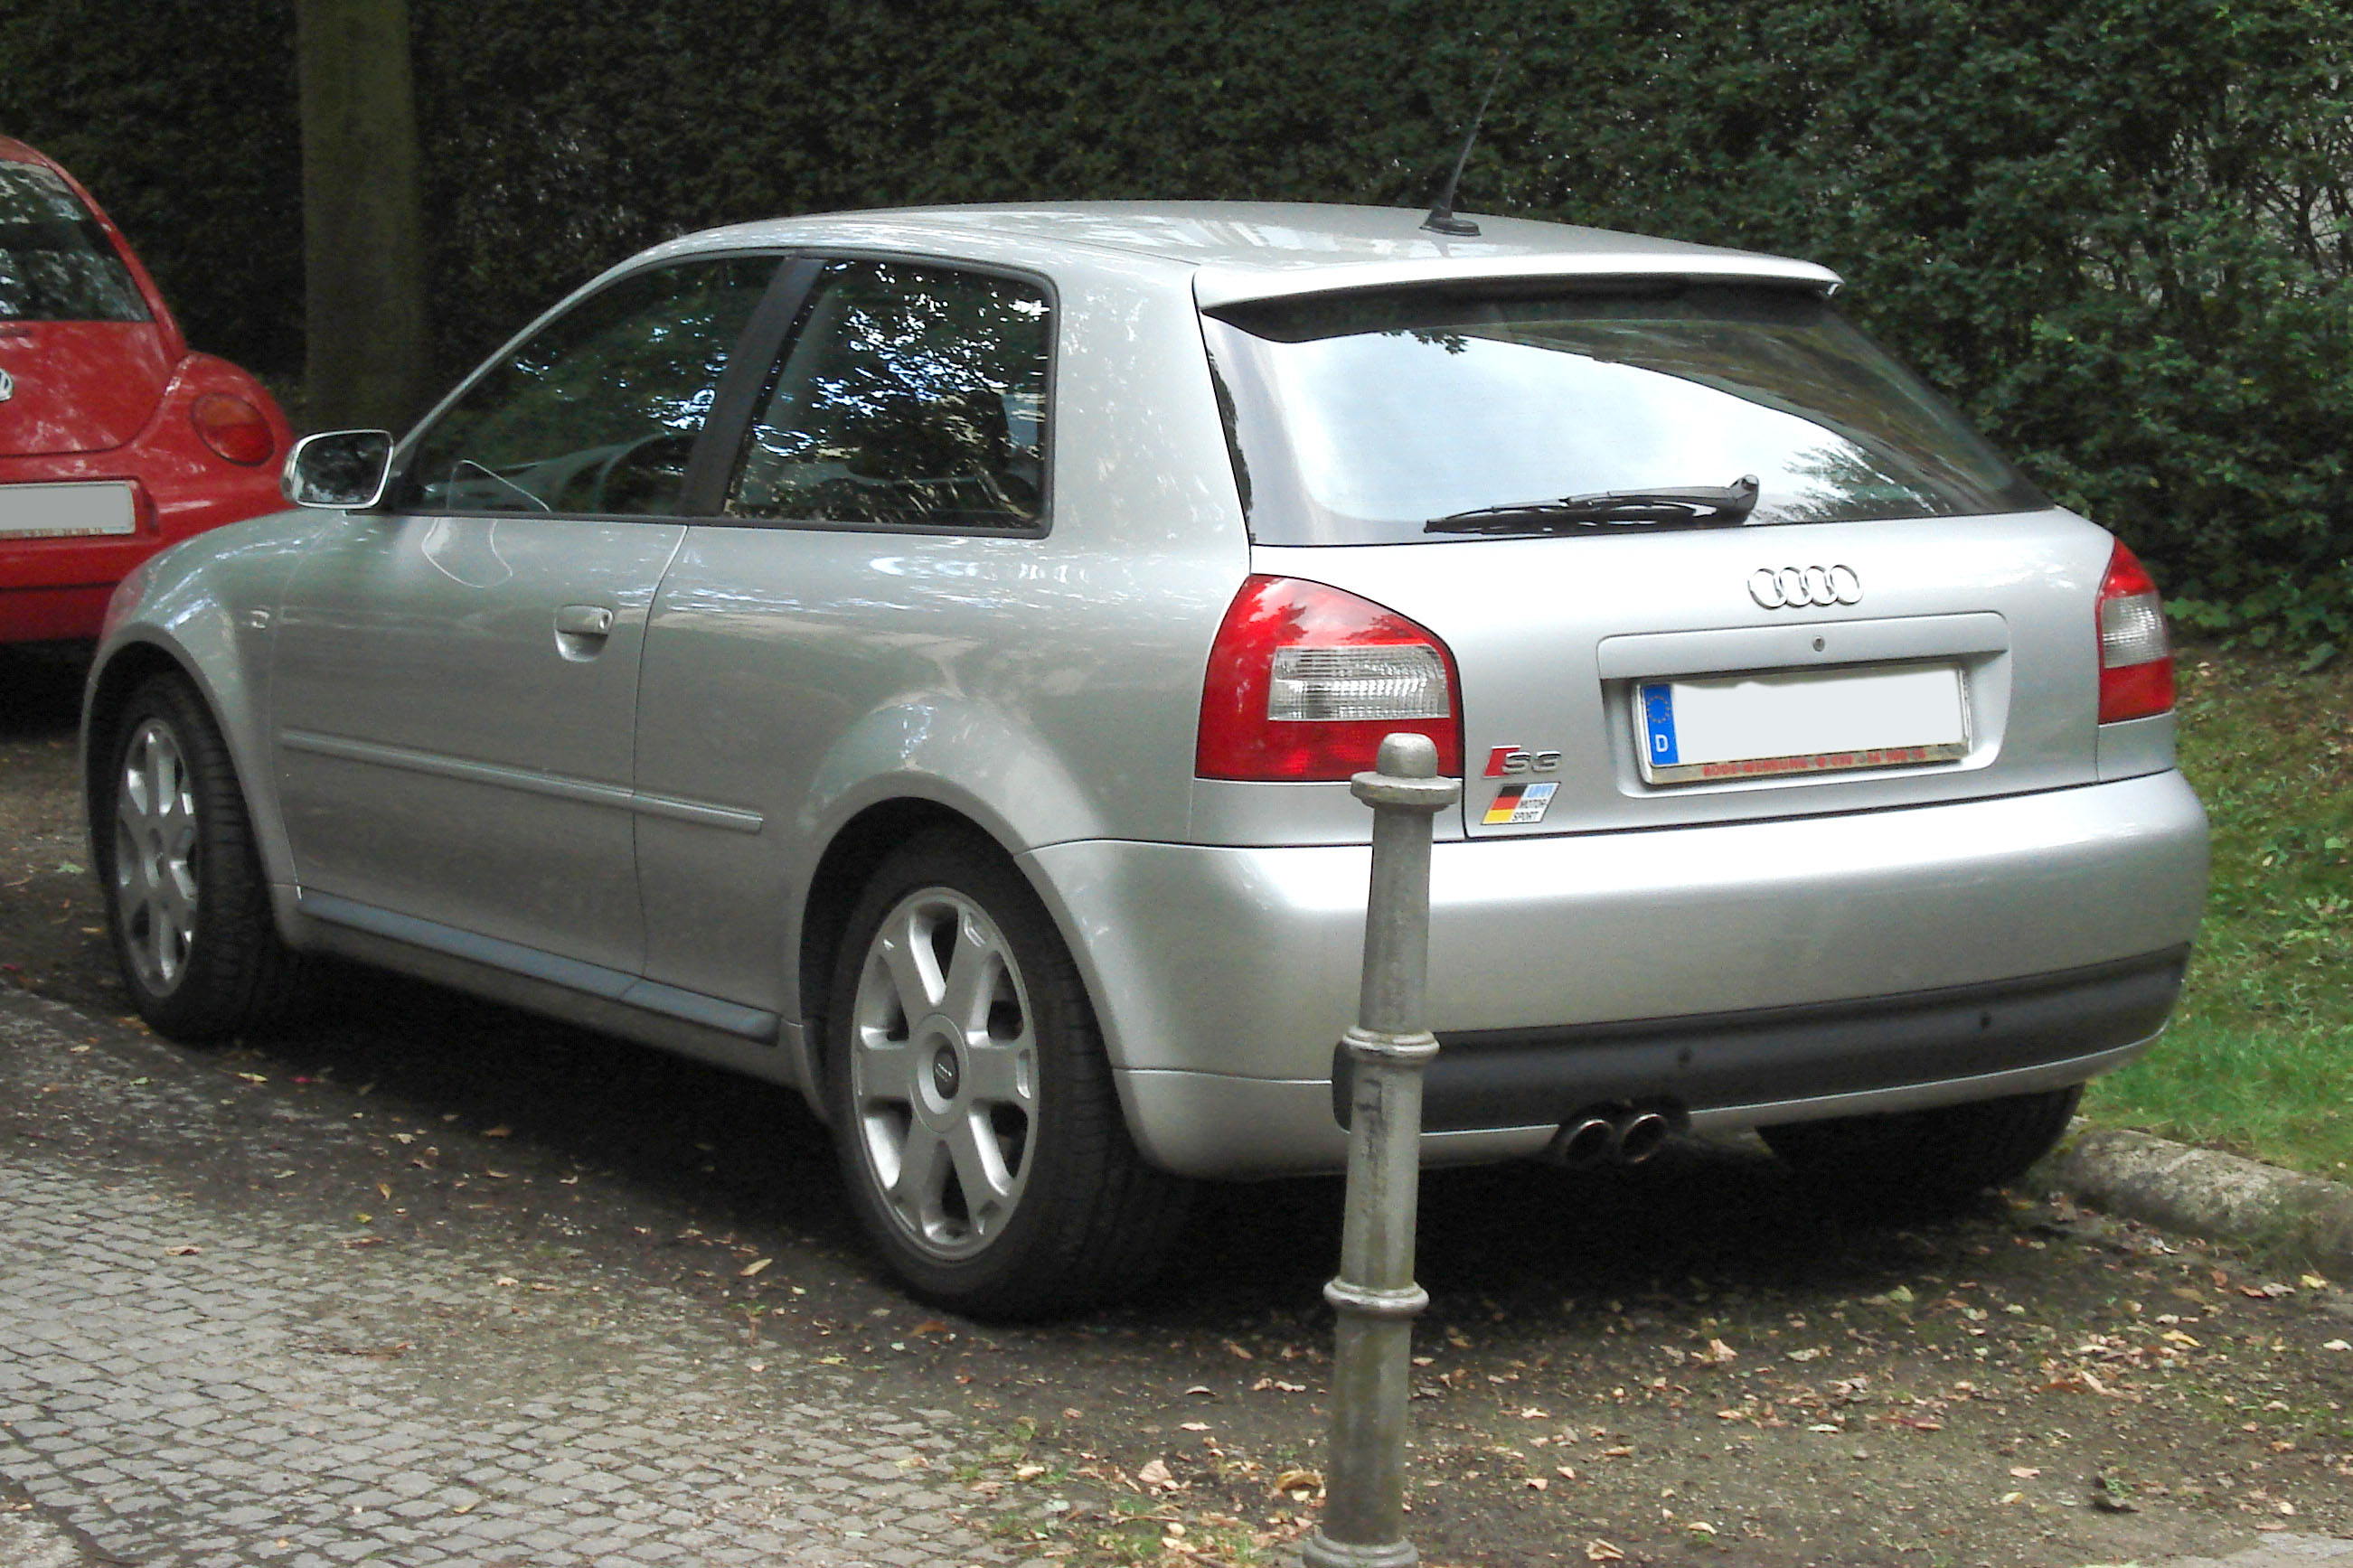 Audi Build Your Own >> File:Silver S3 8L rear.jpg - Wikimedia Commons